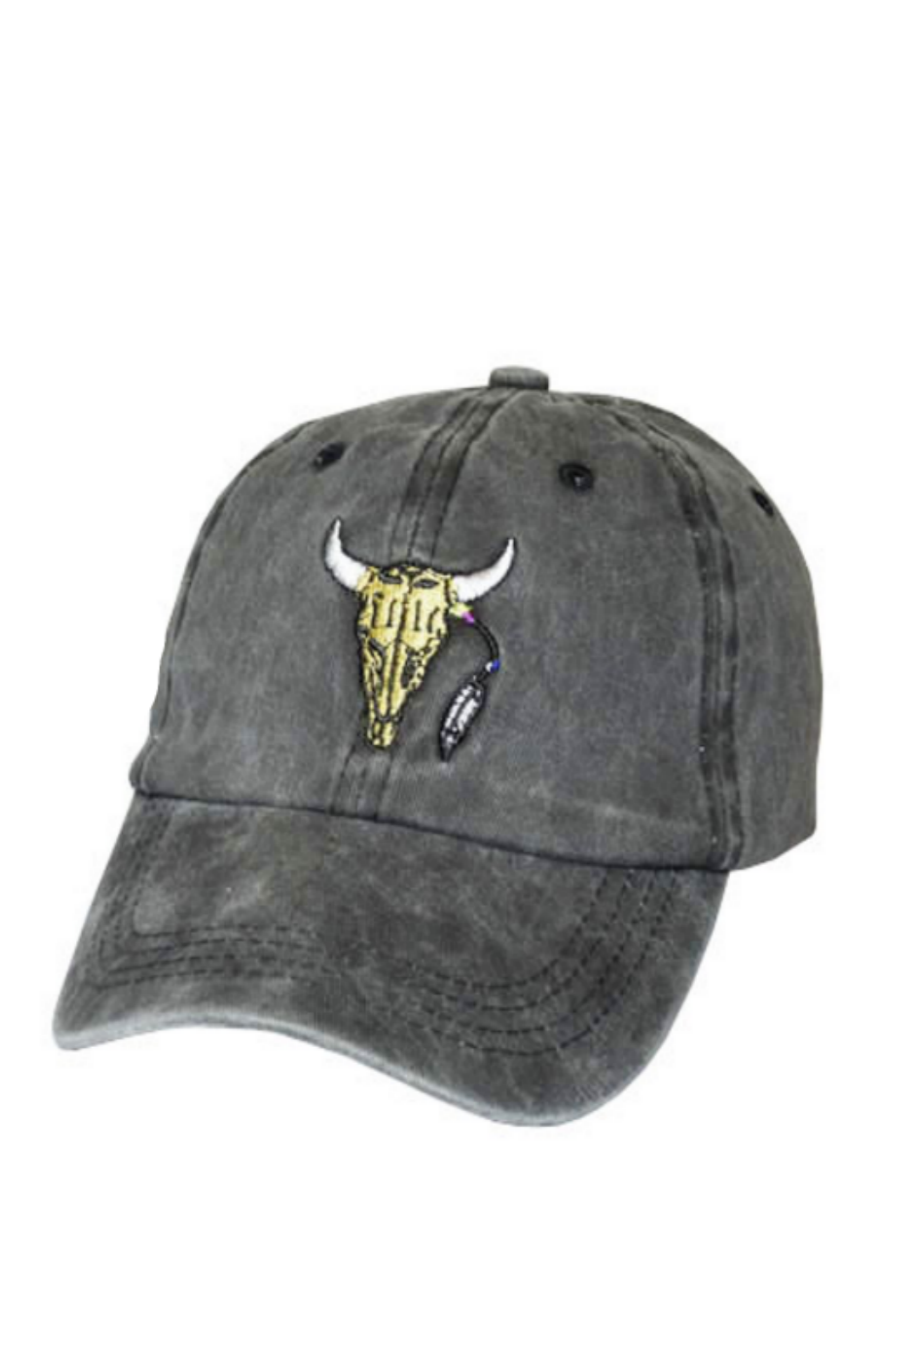 Bull Embroidered Baseball Hat